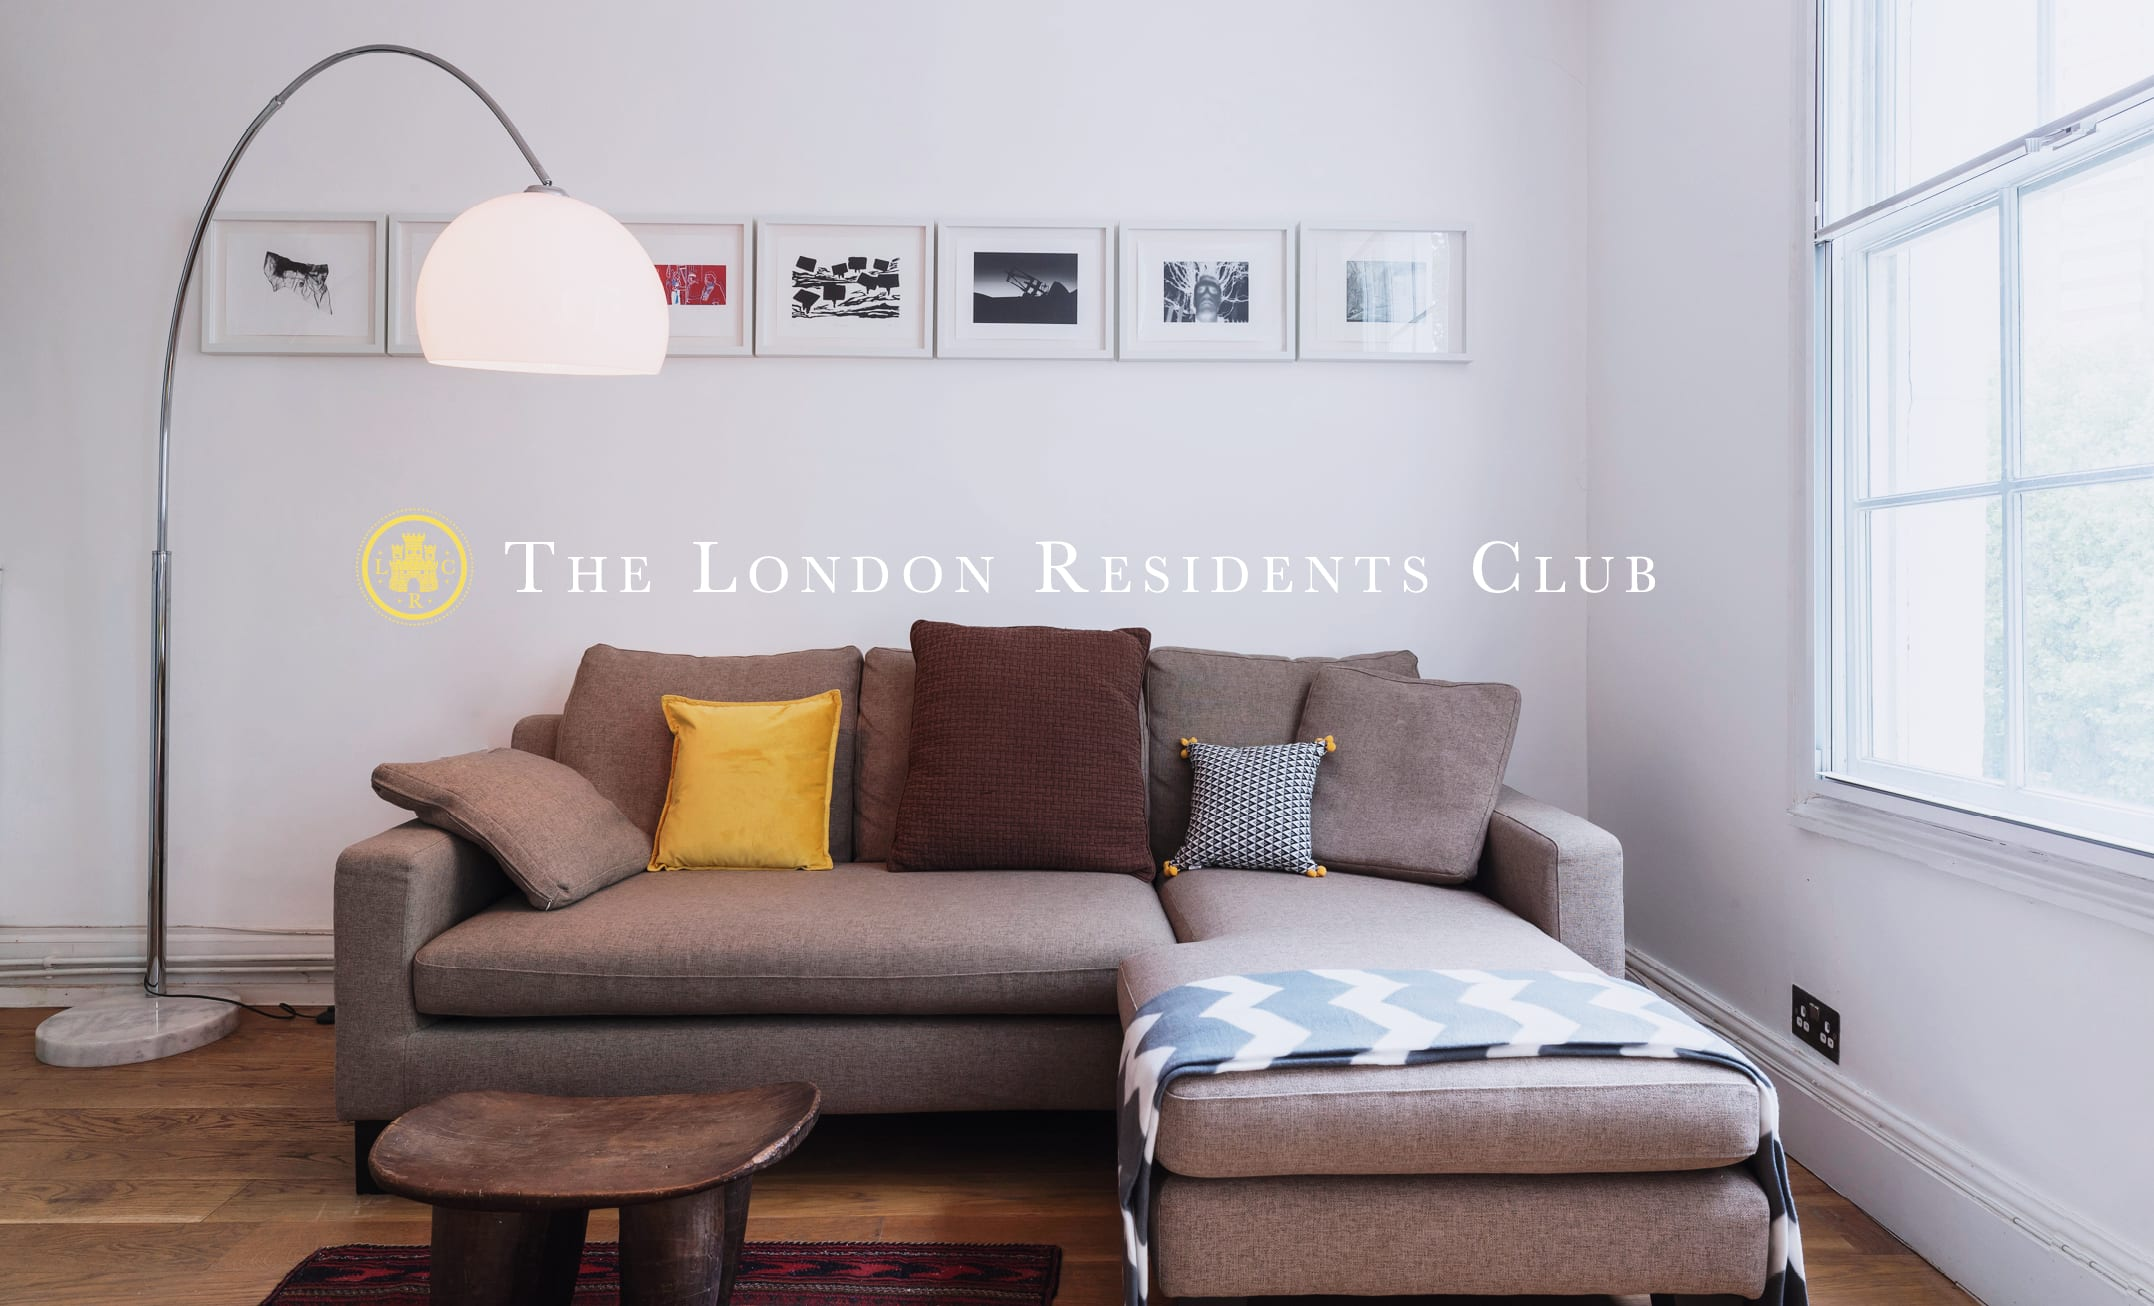 The London Residents Club